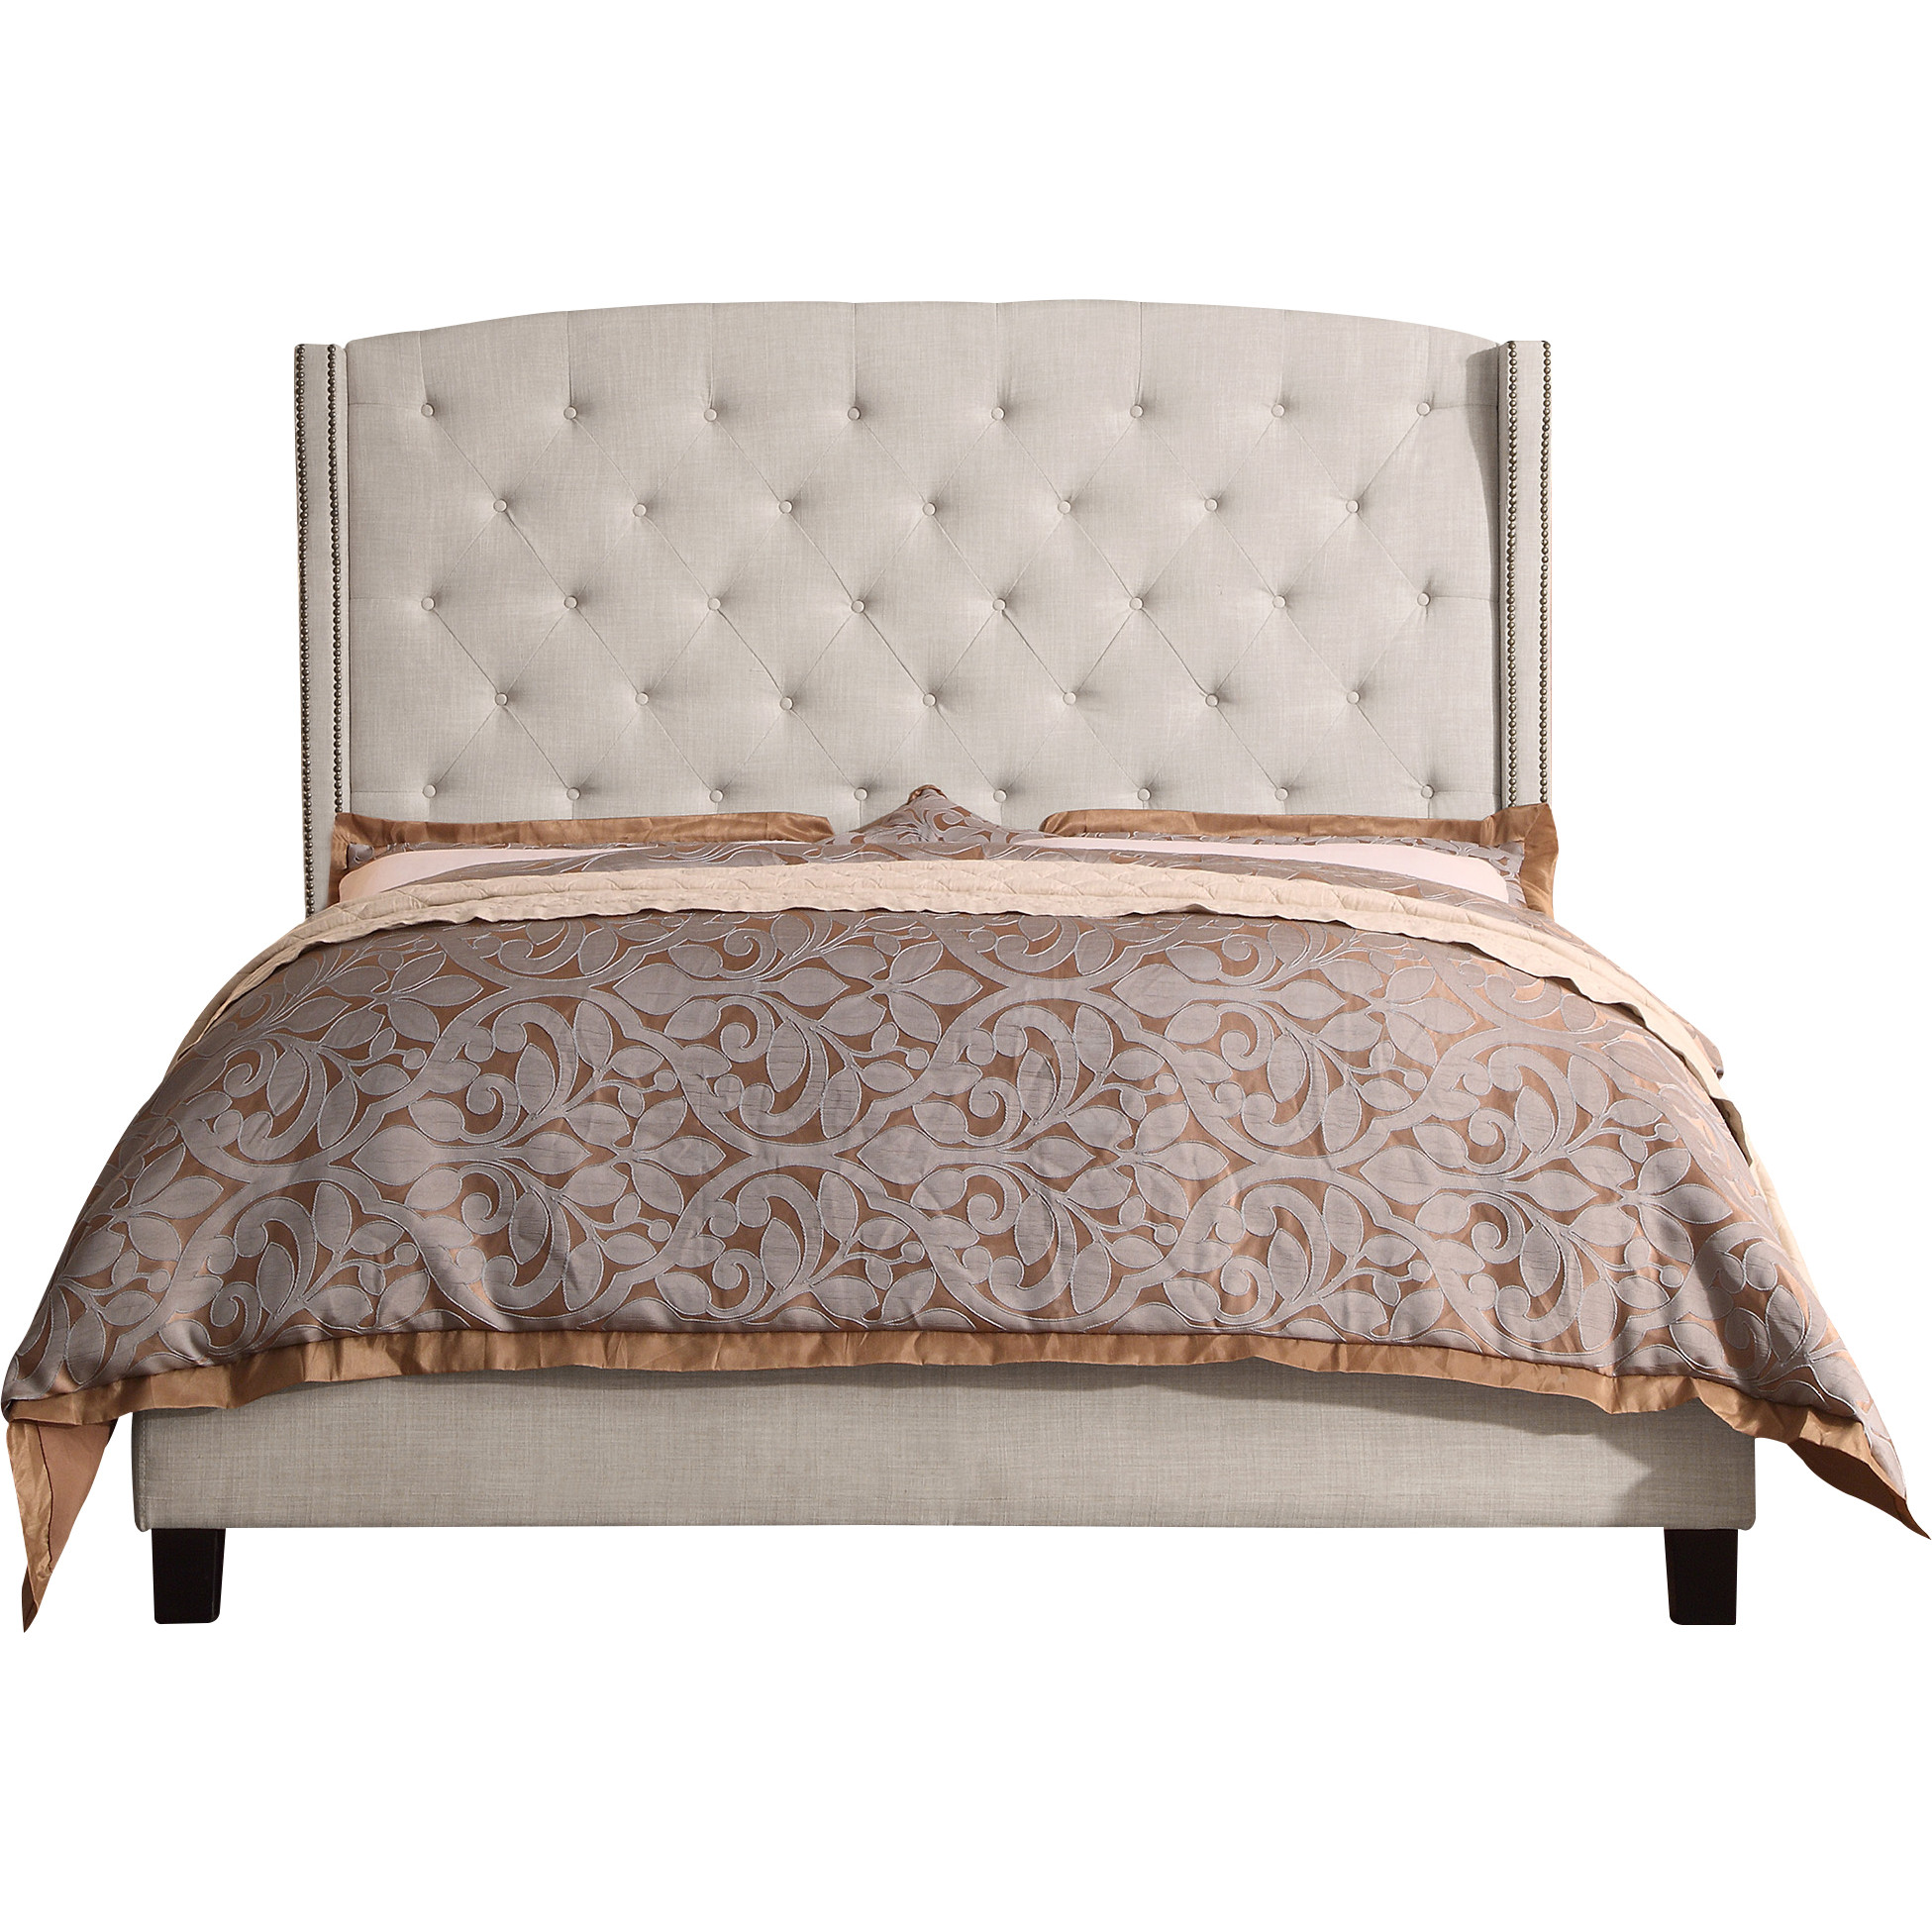 Alton Furniture Lucia King Upholstered Panel Bed, Beige by Fully Wind Co, Ltd.